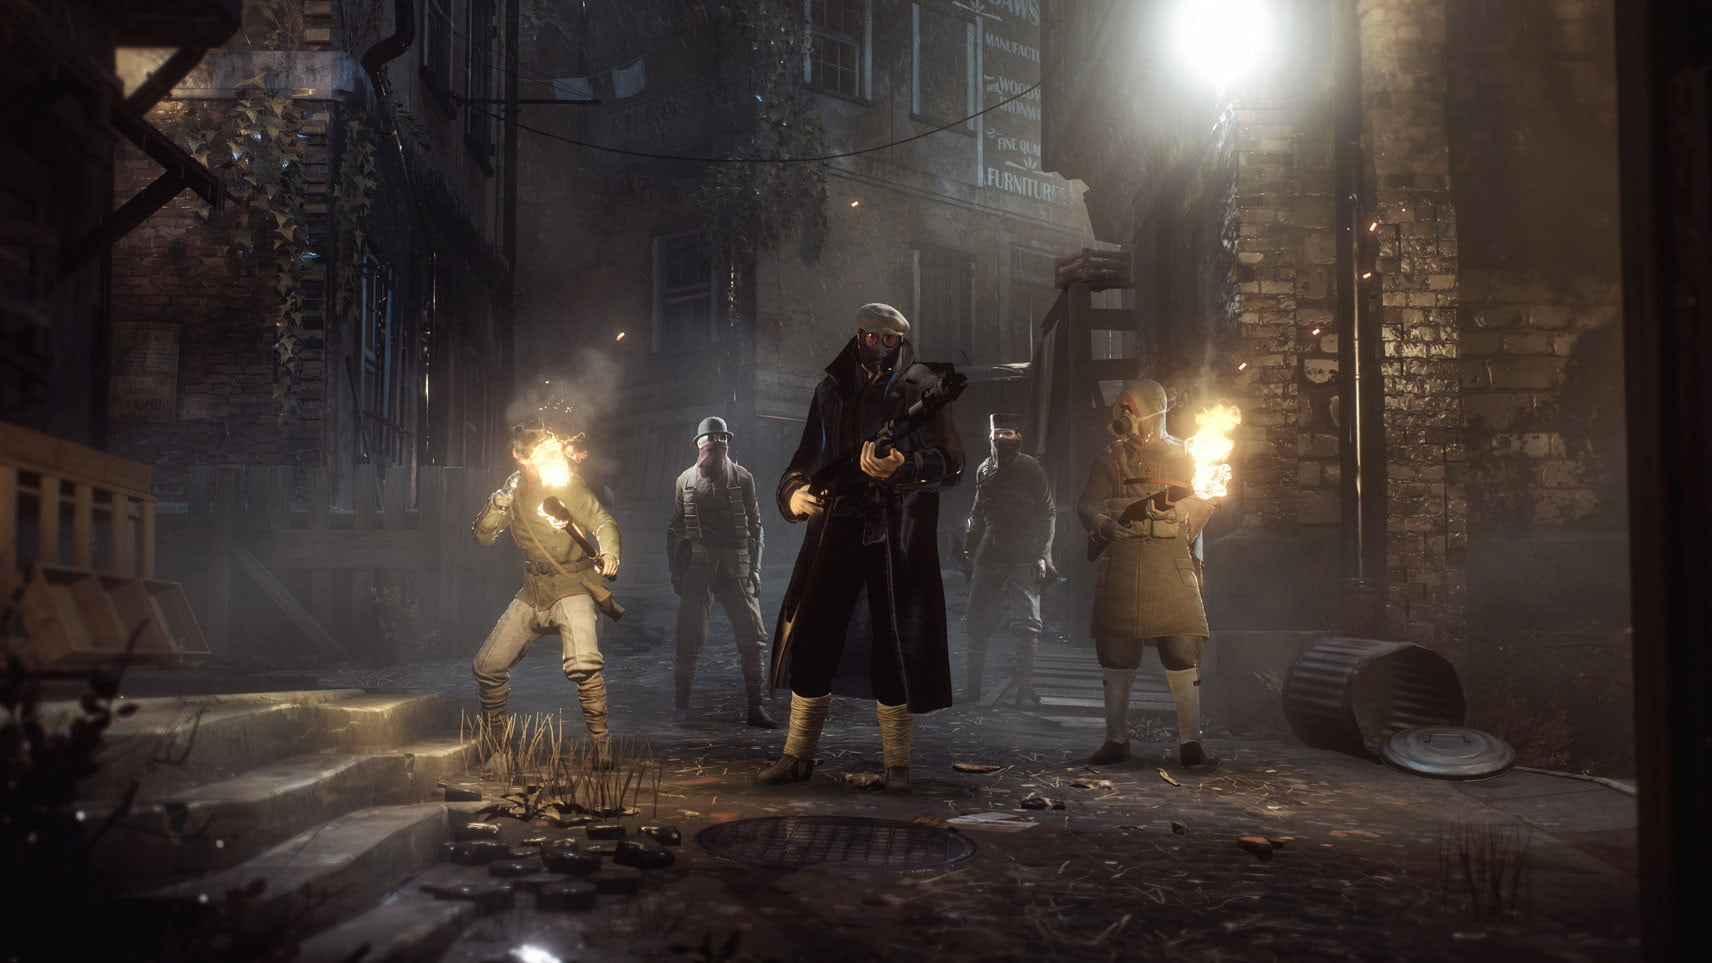 Vampyr' wants you feel the consequences of making bad